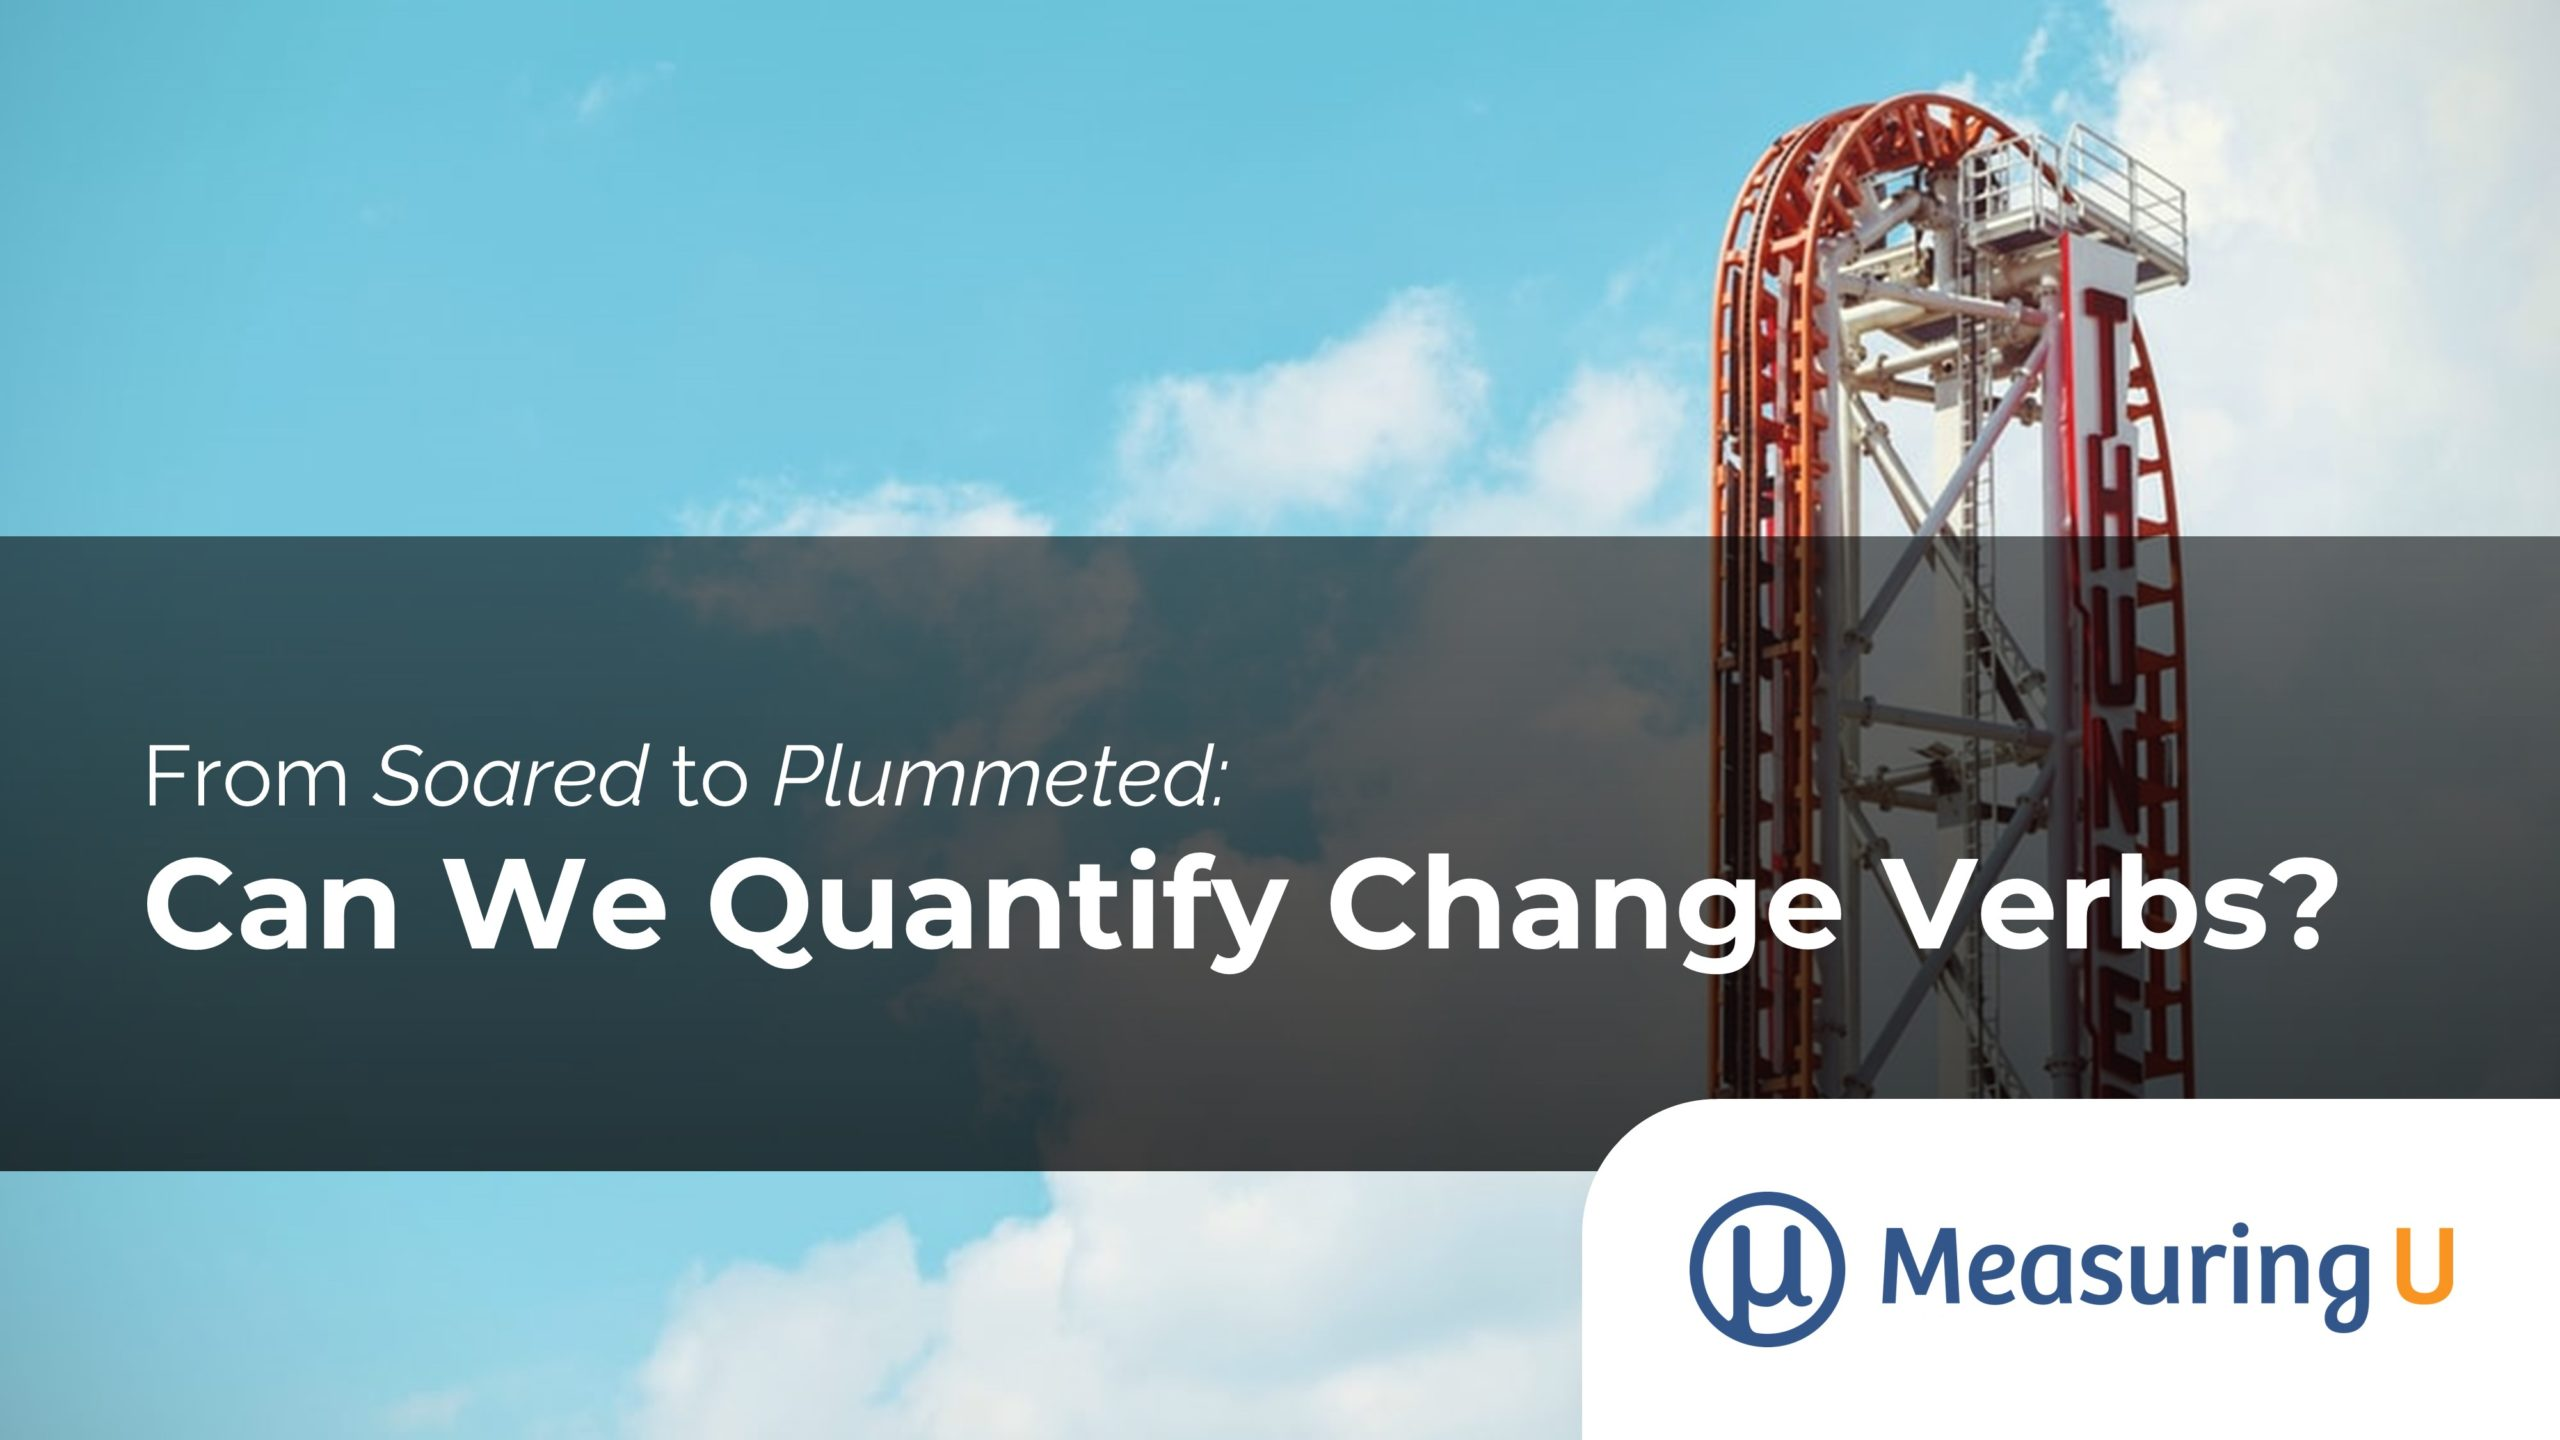 From Soared to Plummeted: Can We Quantify Change Verbs?